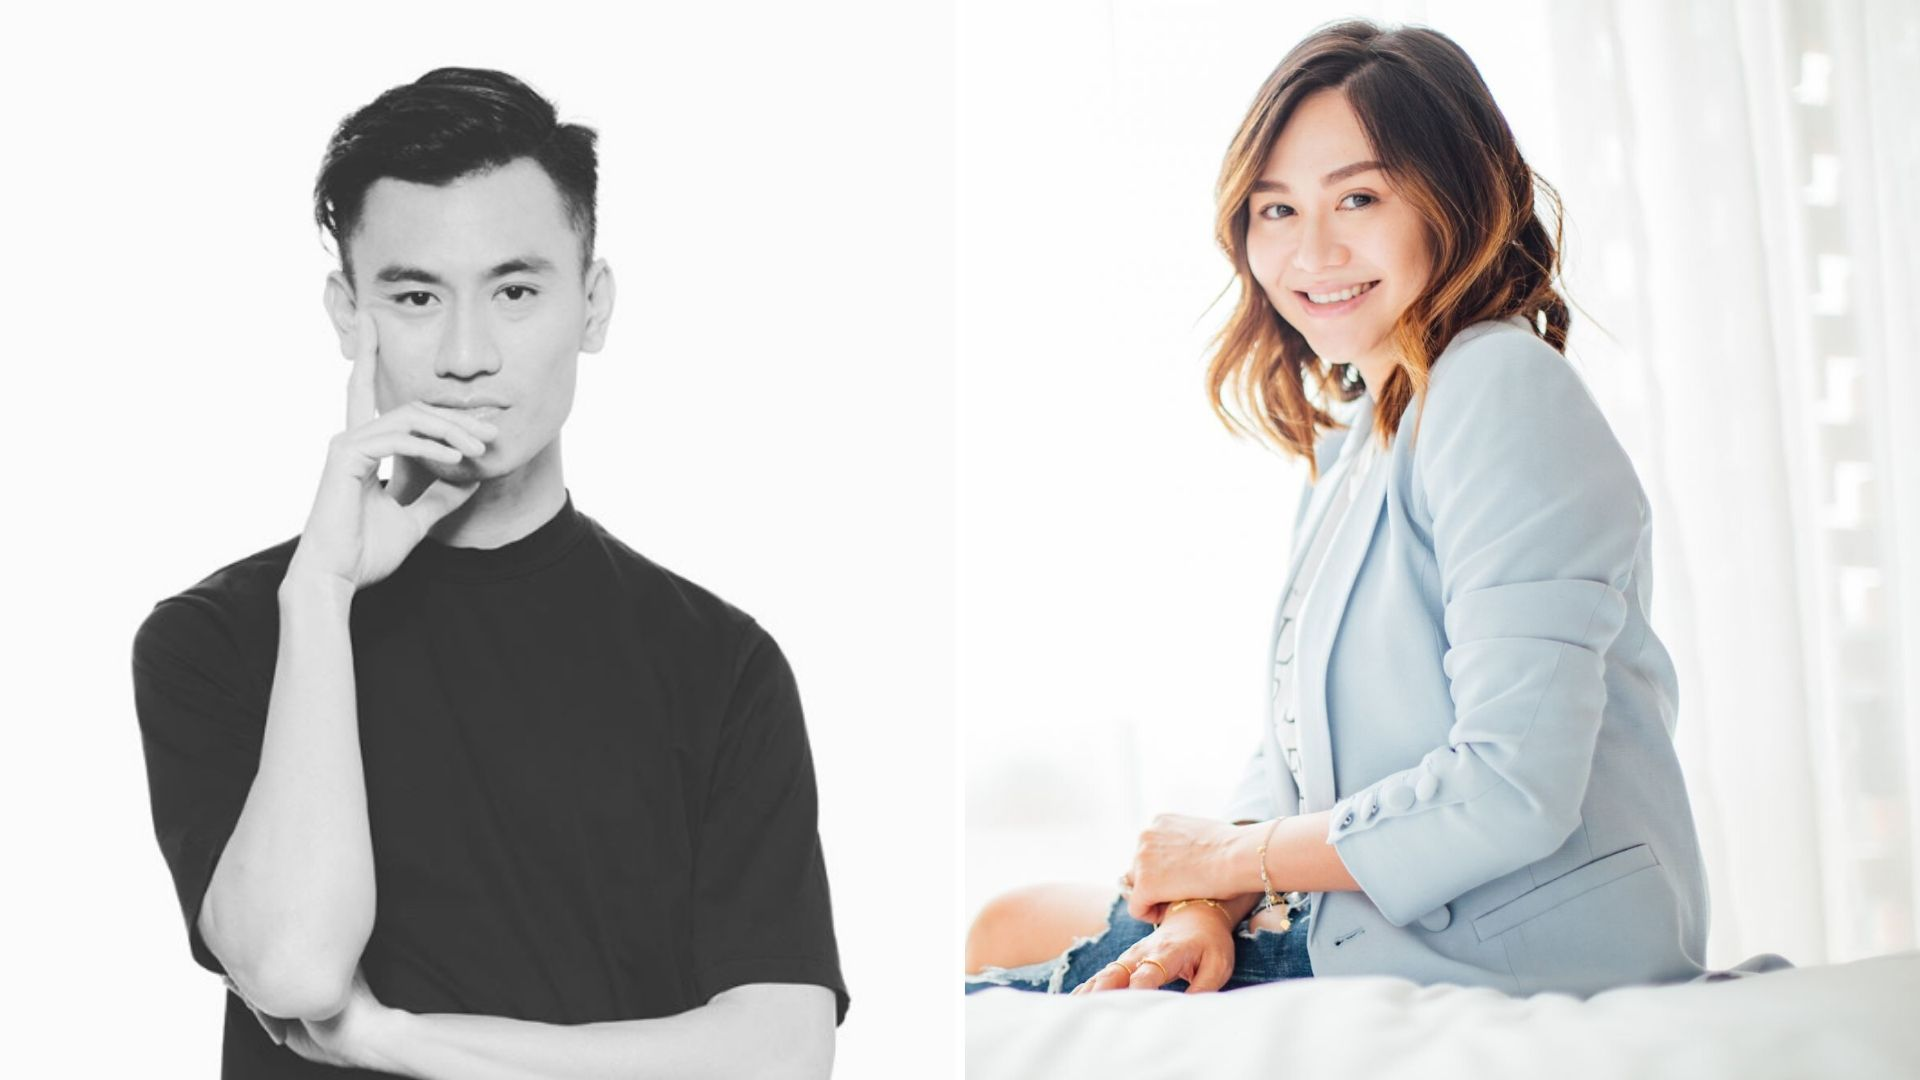 How Dream Team Adrien Kent And Jenn Low Made Their Store Design Vision Happen In Record Time